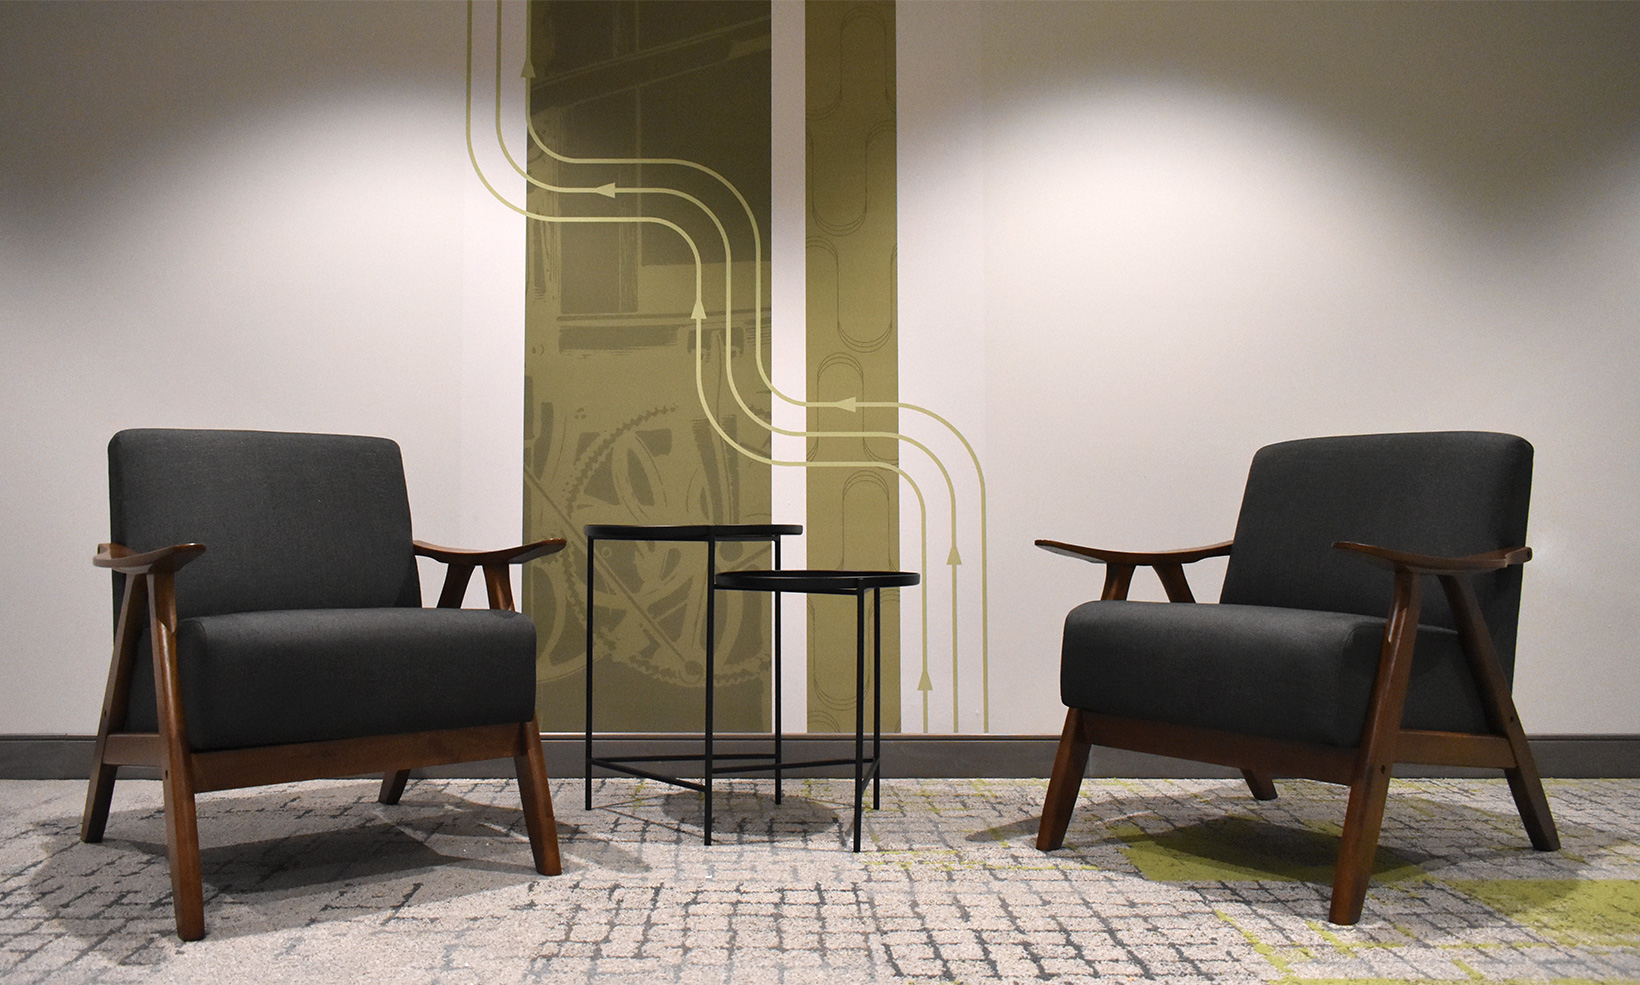 Two armchairs selected for a Forge Apartments common room work with the wall graphics to support the building's overall aesthetic and brand